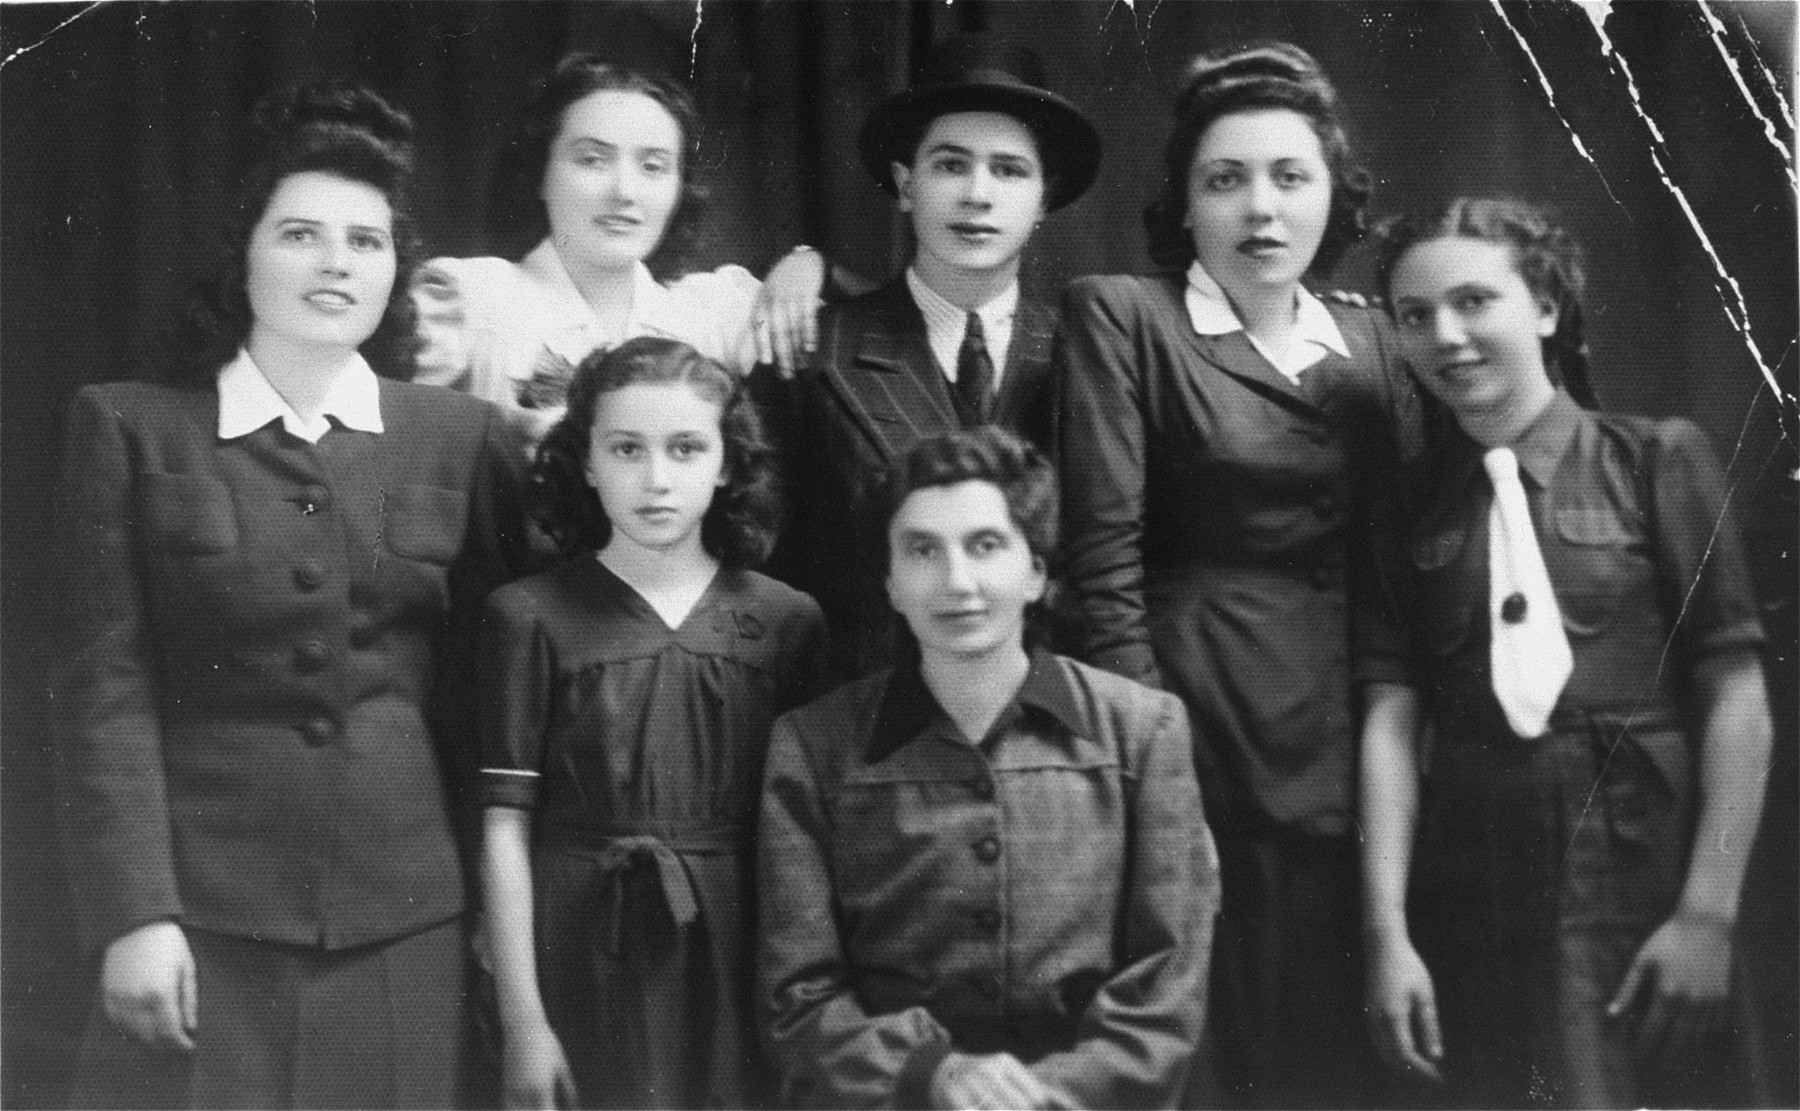 Group portrait of members of the Katz family in Munkacs.  Pictured in the bottom row (from left to right) are: Helen and Tereza Katz; top row: Chicha. Isabella; Philip, Jolon (Cipi) and Regina Katz.